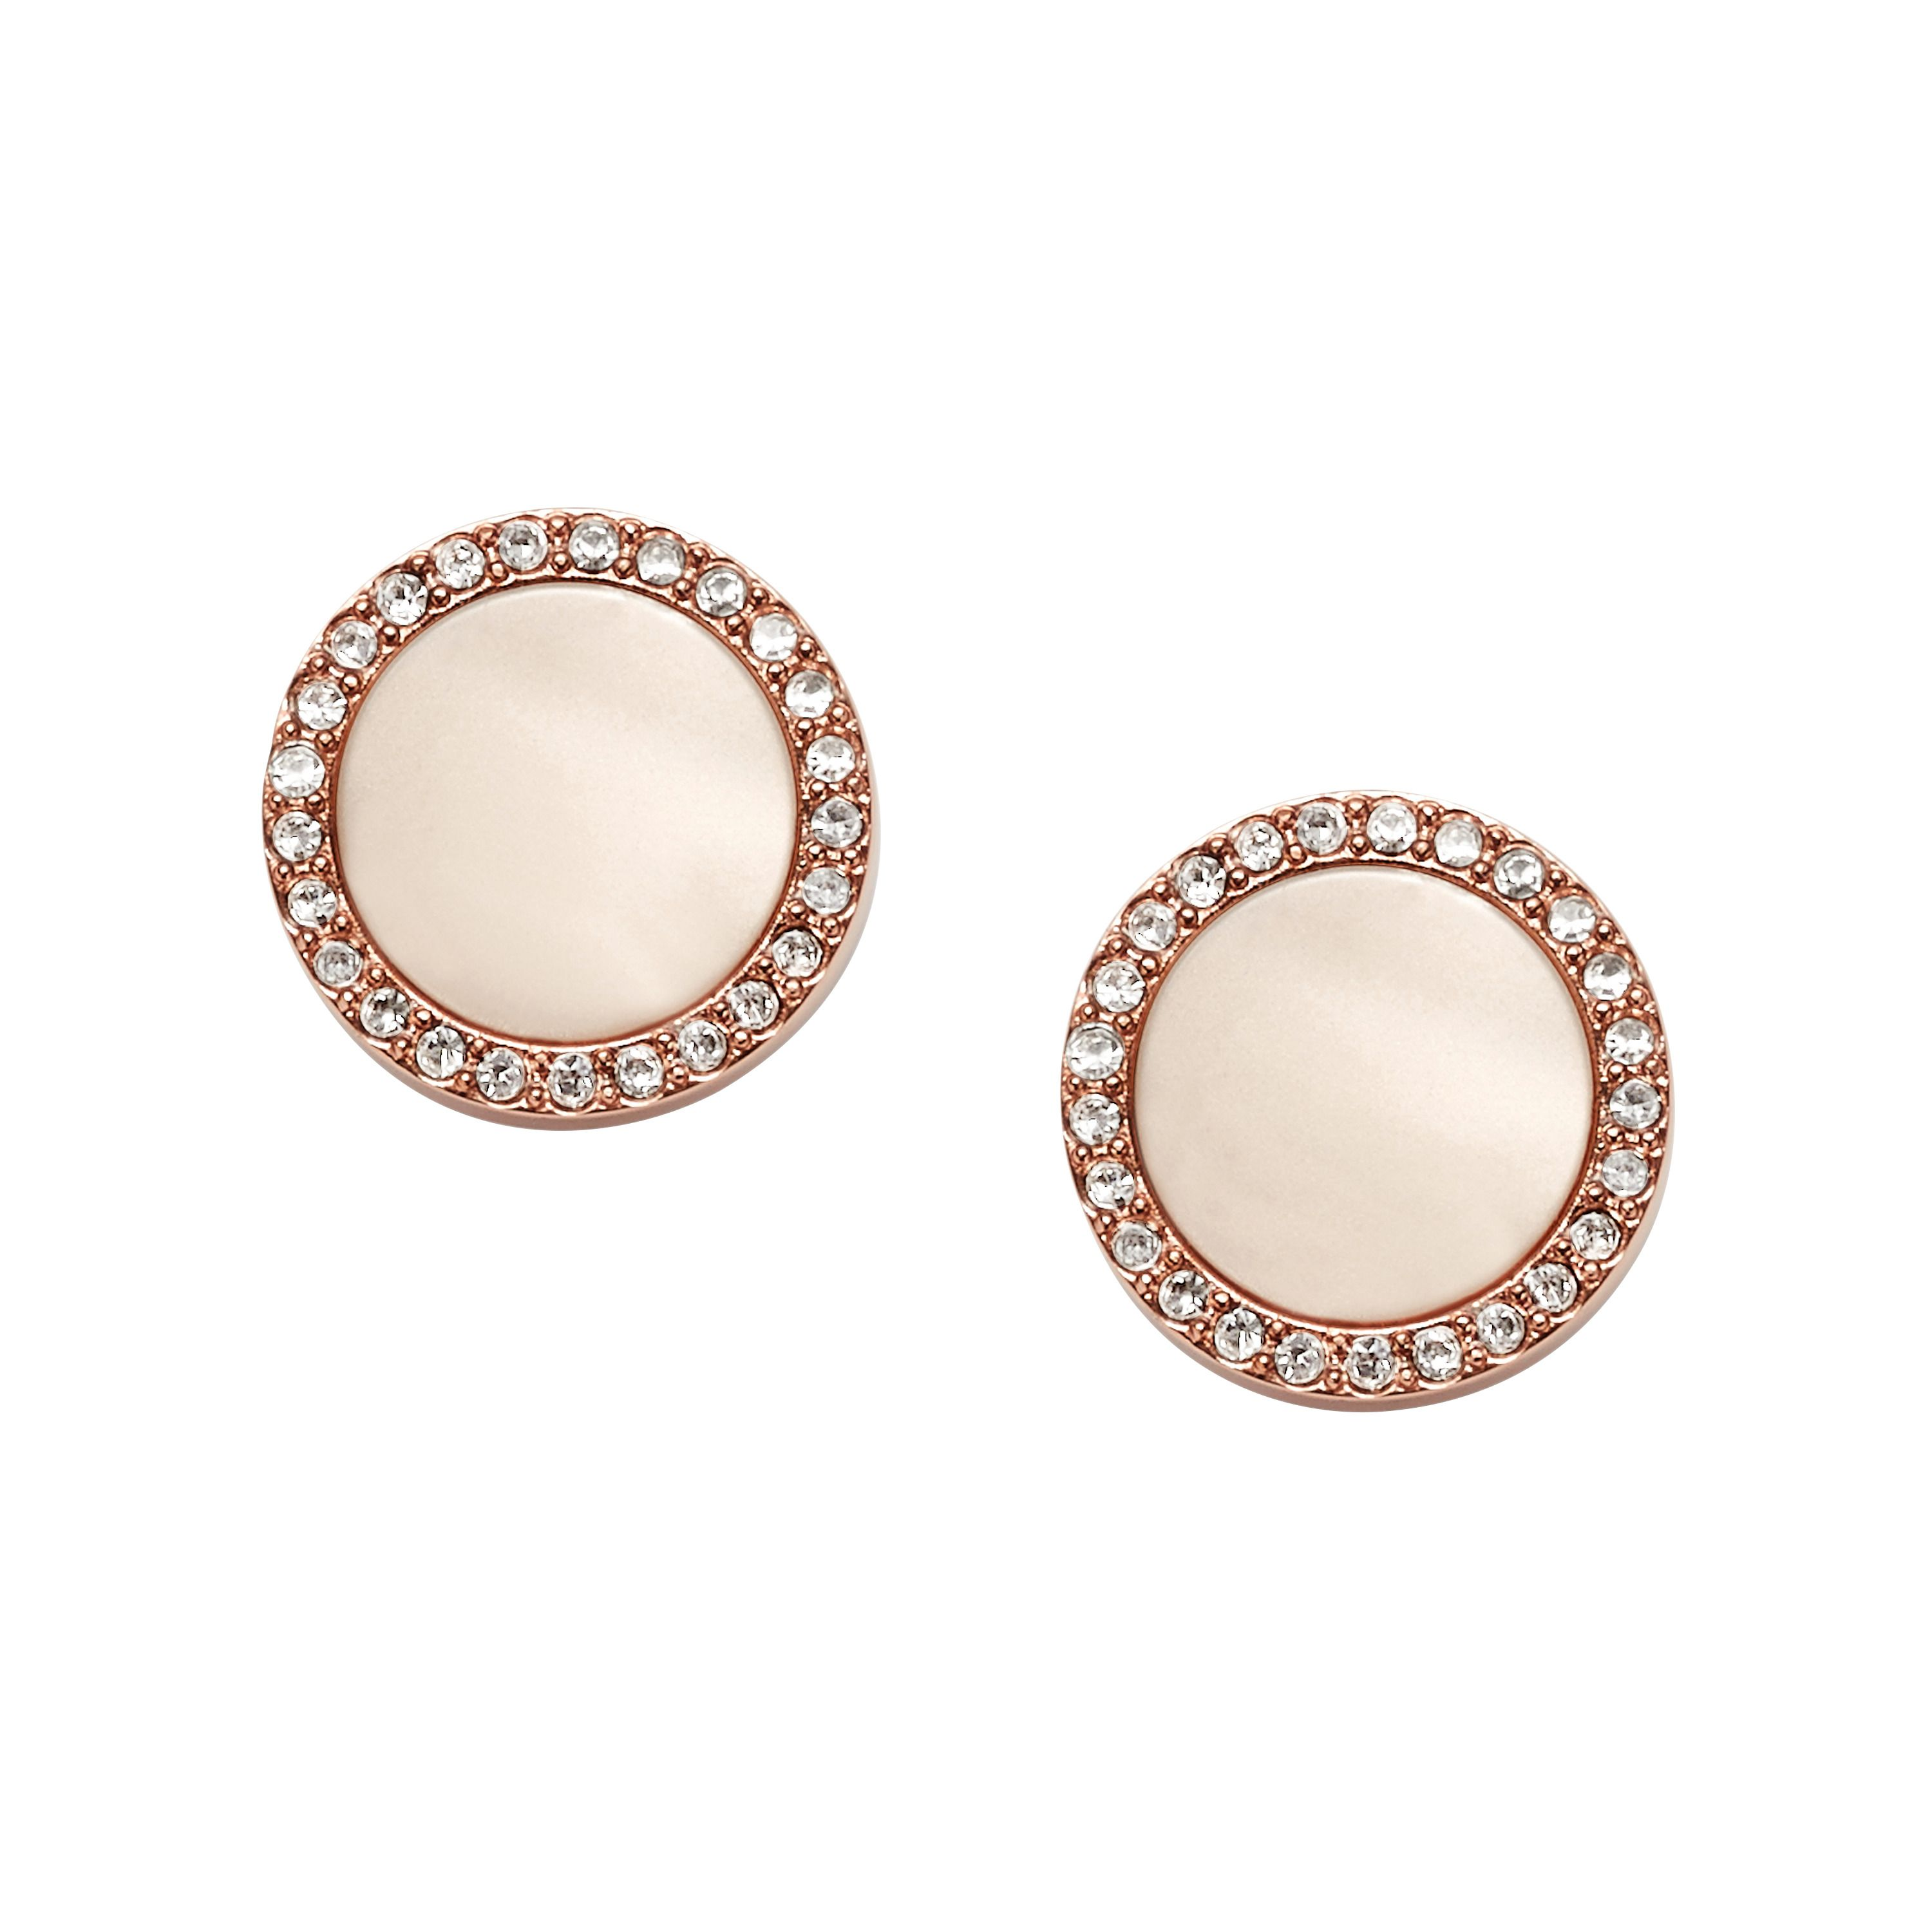 Fossil JF01715791 ladies earrings, Rose Gold